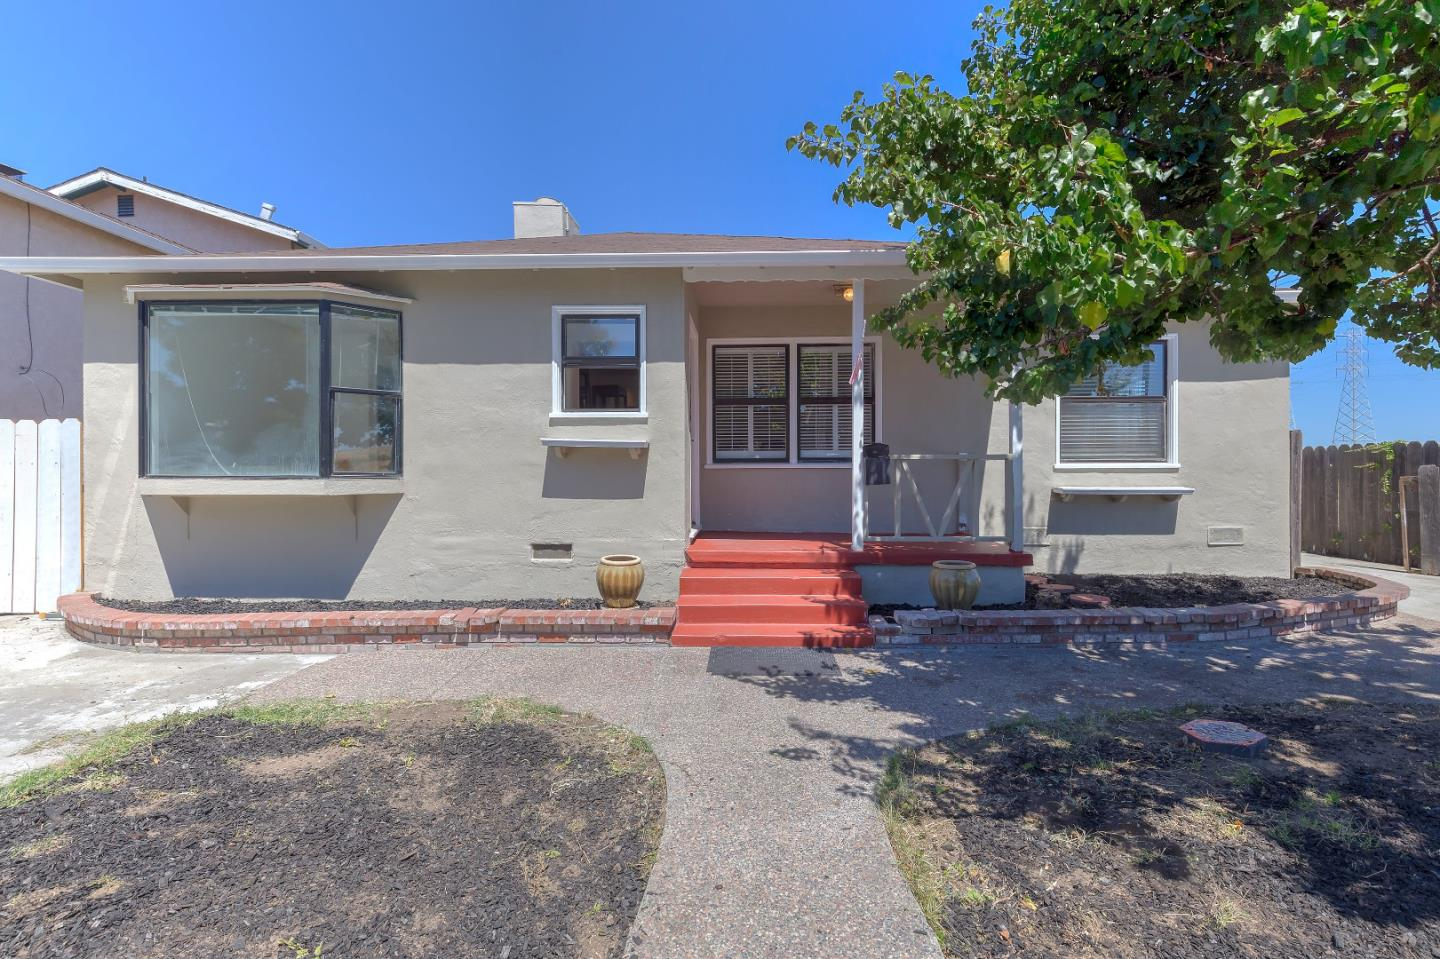 1729 2nd Avenue, SAN MATEO, CA 94401